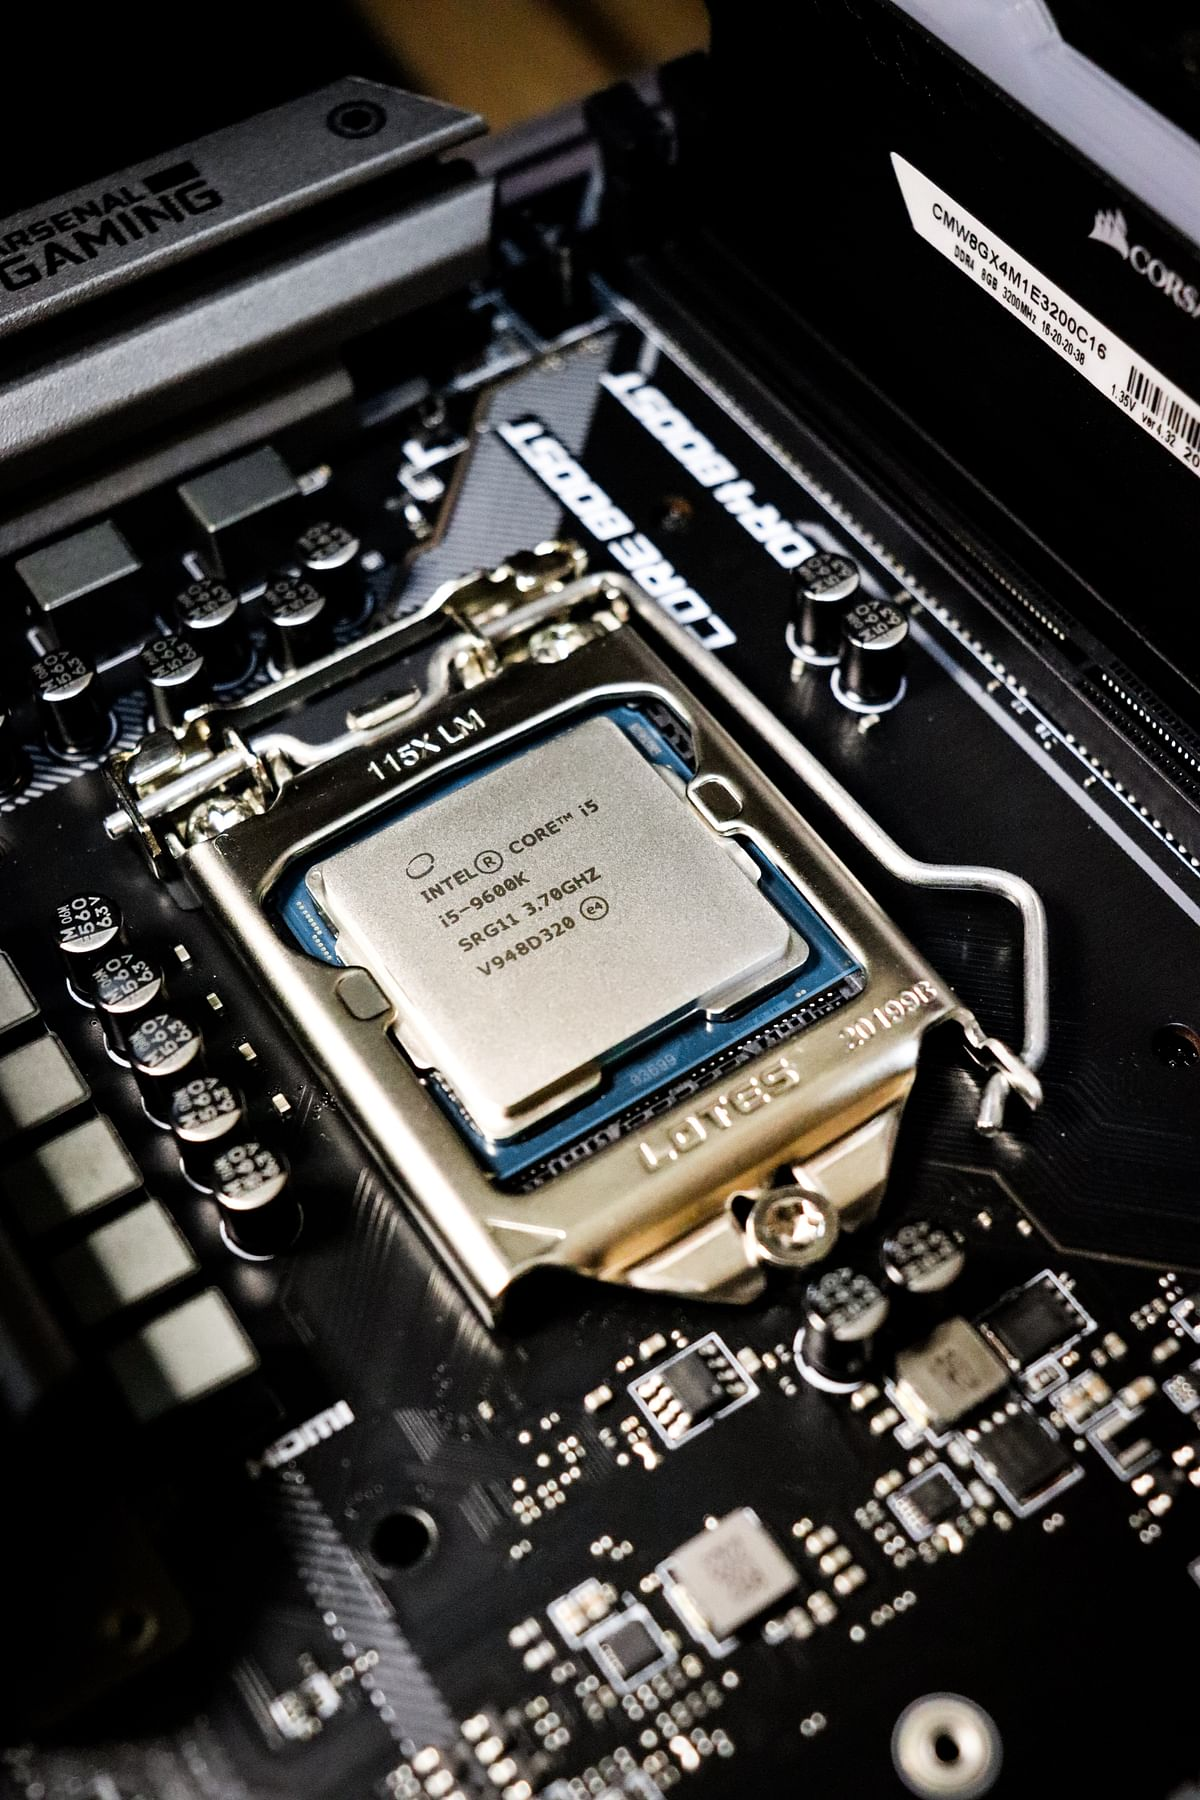 An Intel CPU on a motherboard